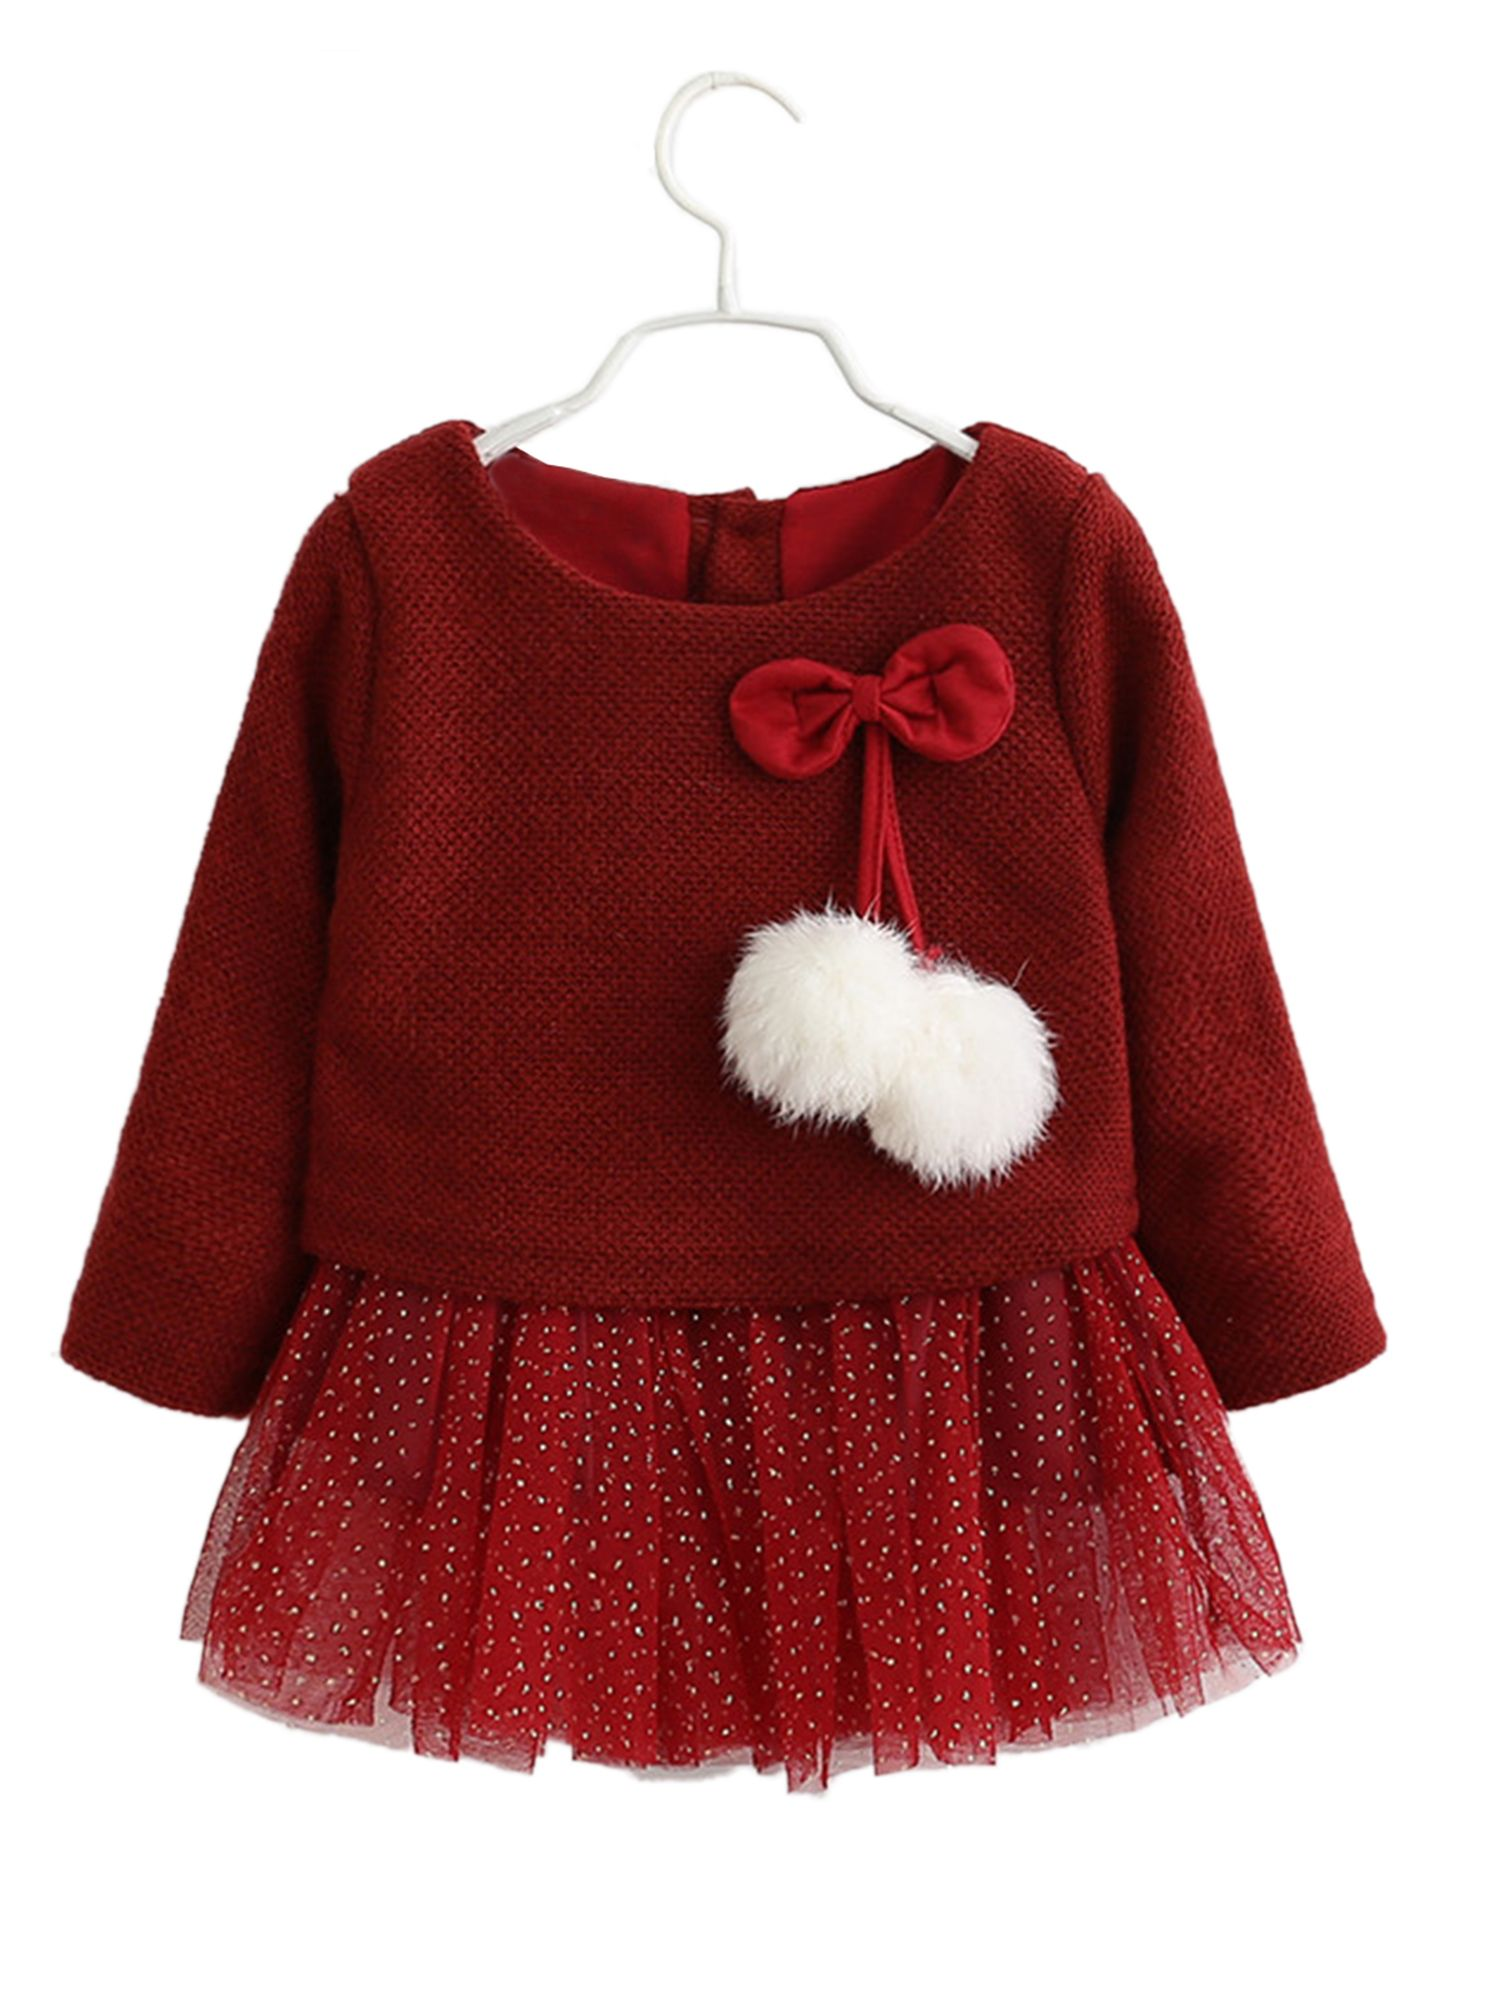 StylesILove - StylesILove Infant Baby Girl Knit Sweater with Gold